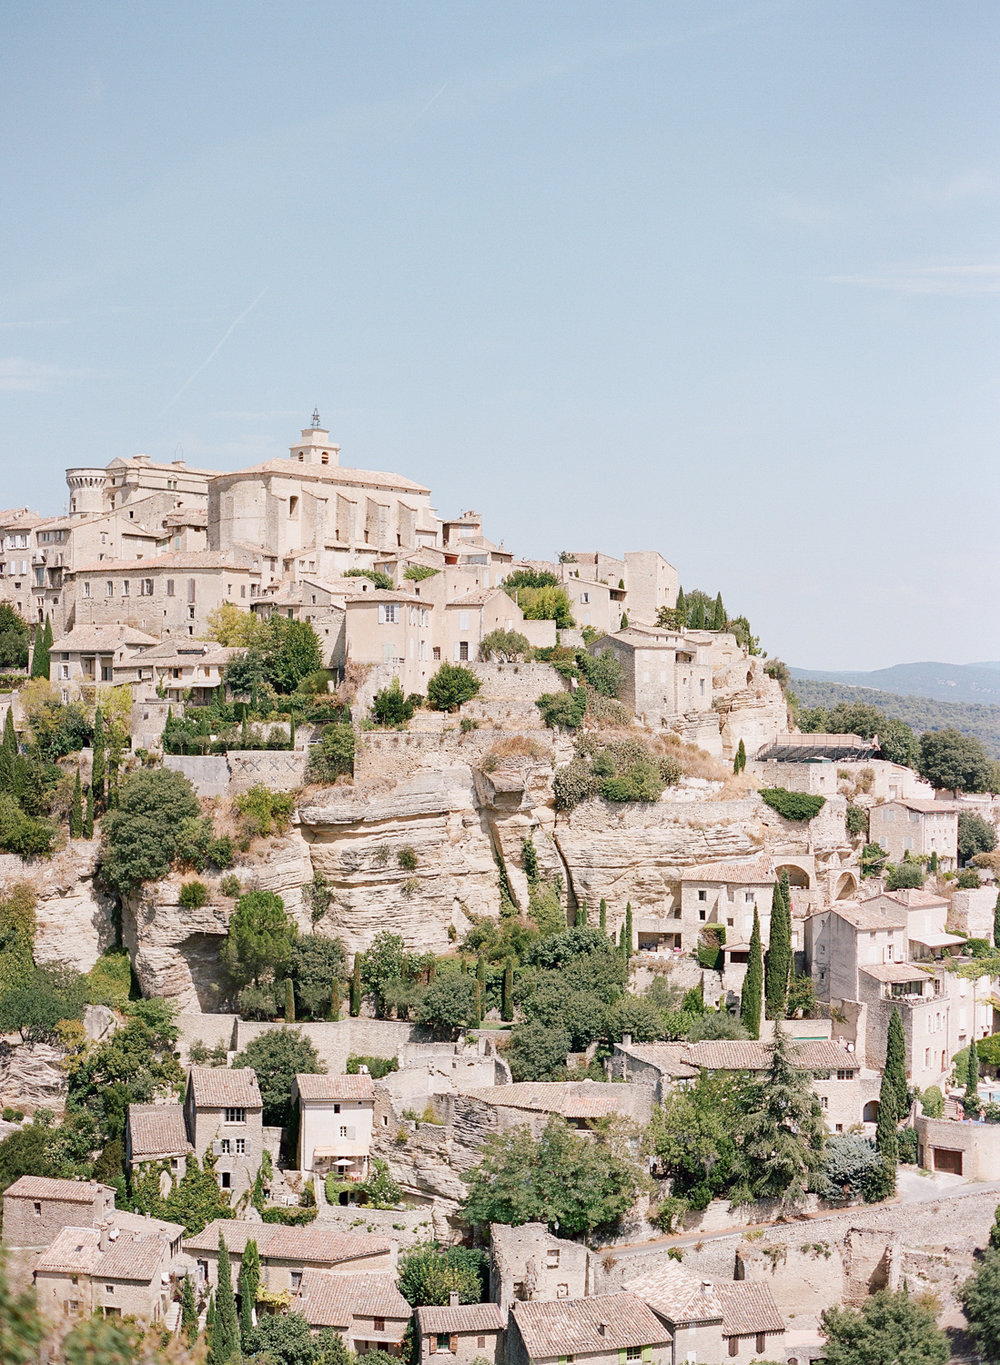 Red tile roofs of the hillside homes in the village of Gordes, France; Sylvie Gil Photography